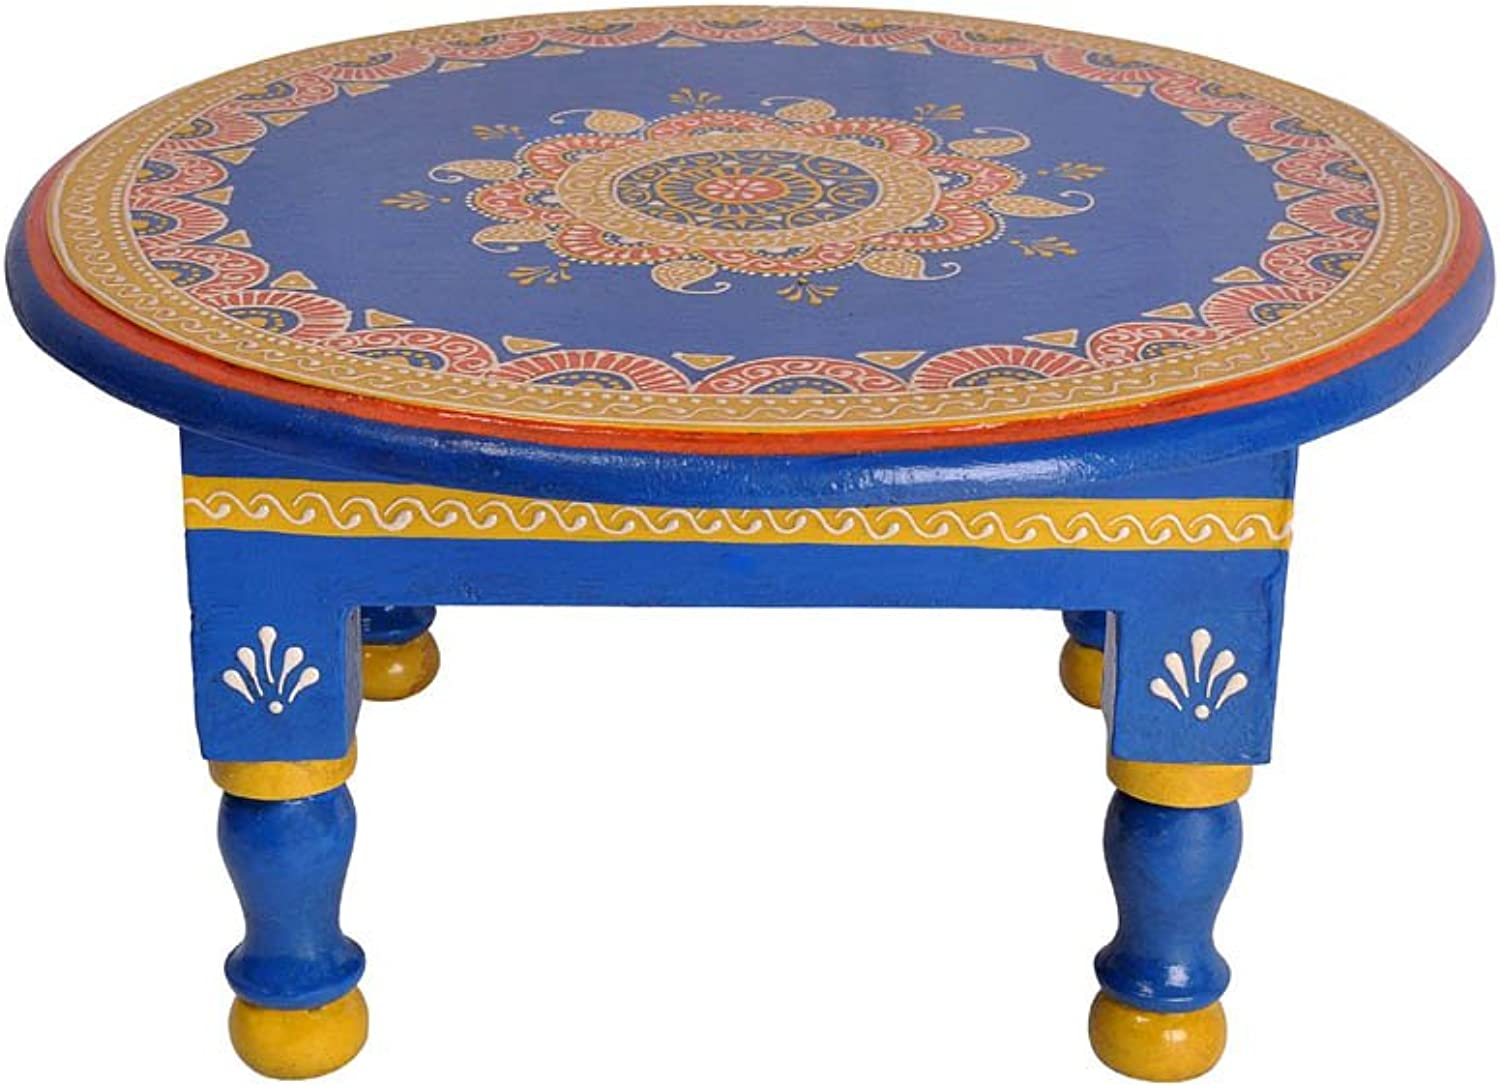 Lalhaveli Wooden Small Side Tables for Small Spaces Kids Study Table12 x 12 x 6 Inch